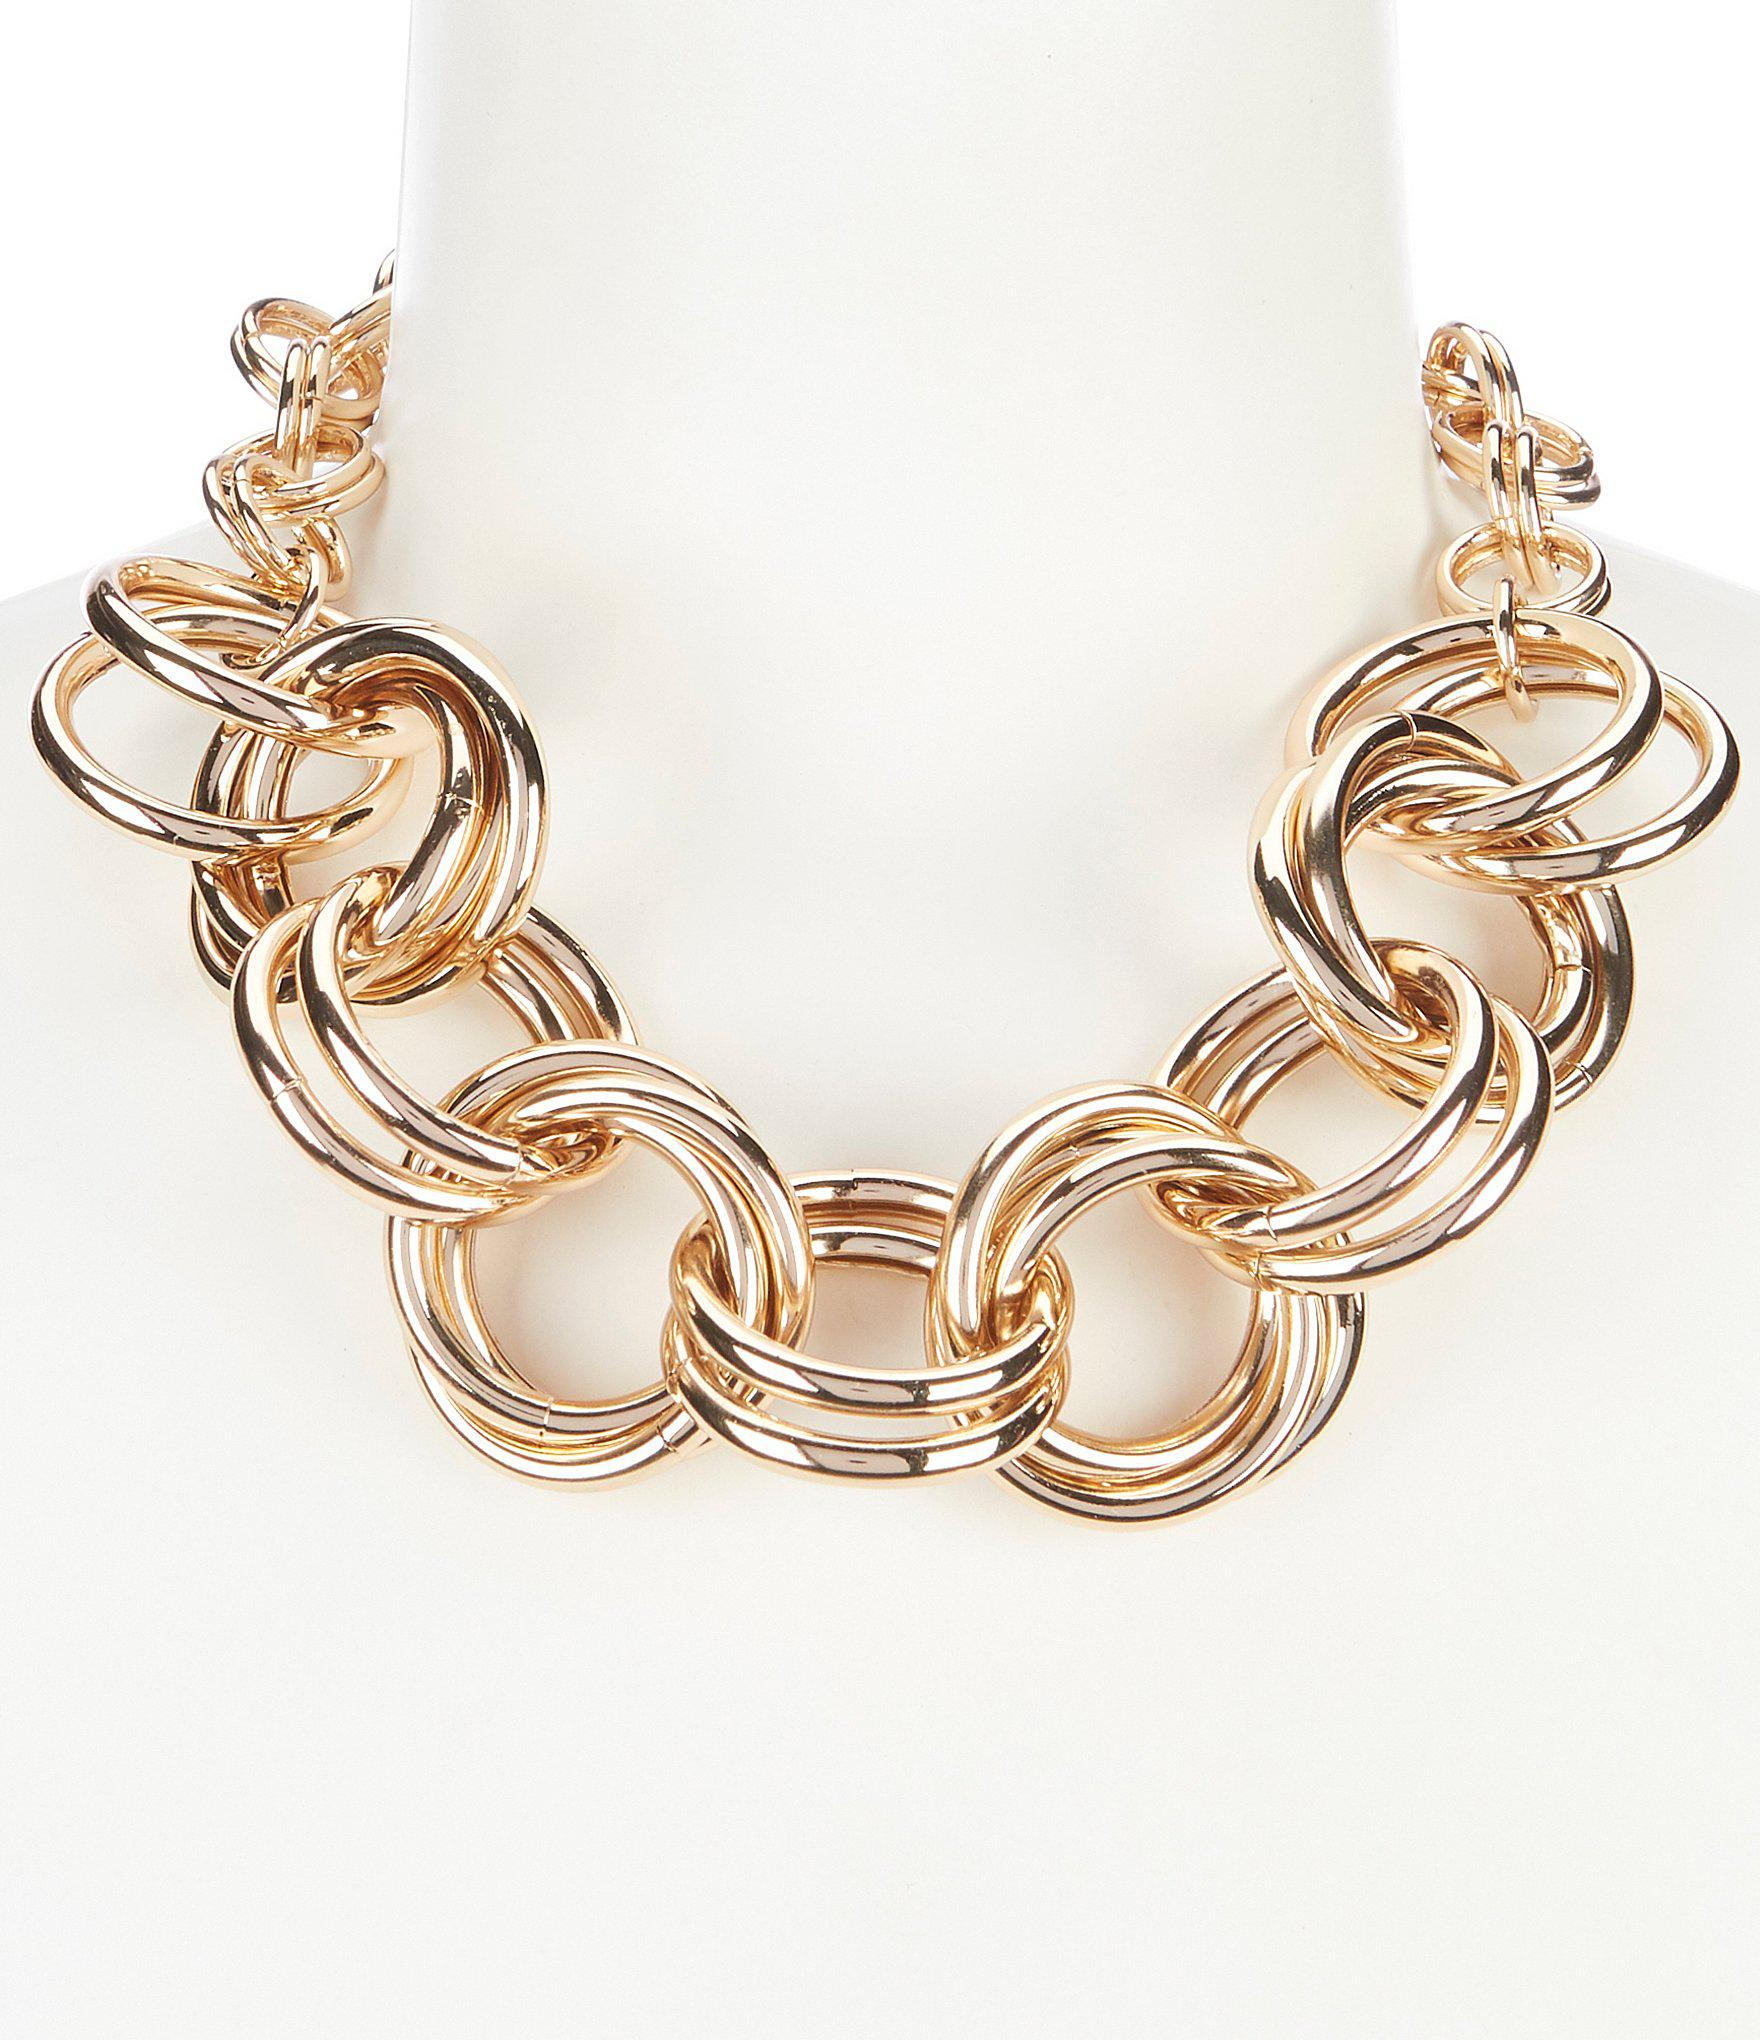 d8929dbc3c66f Dillard's Tailored Double Link Ring Frontal Necklace in Metallic - Lyst